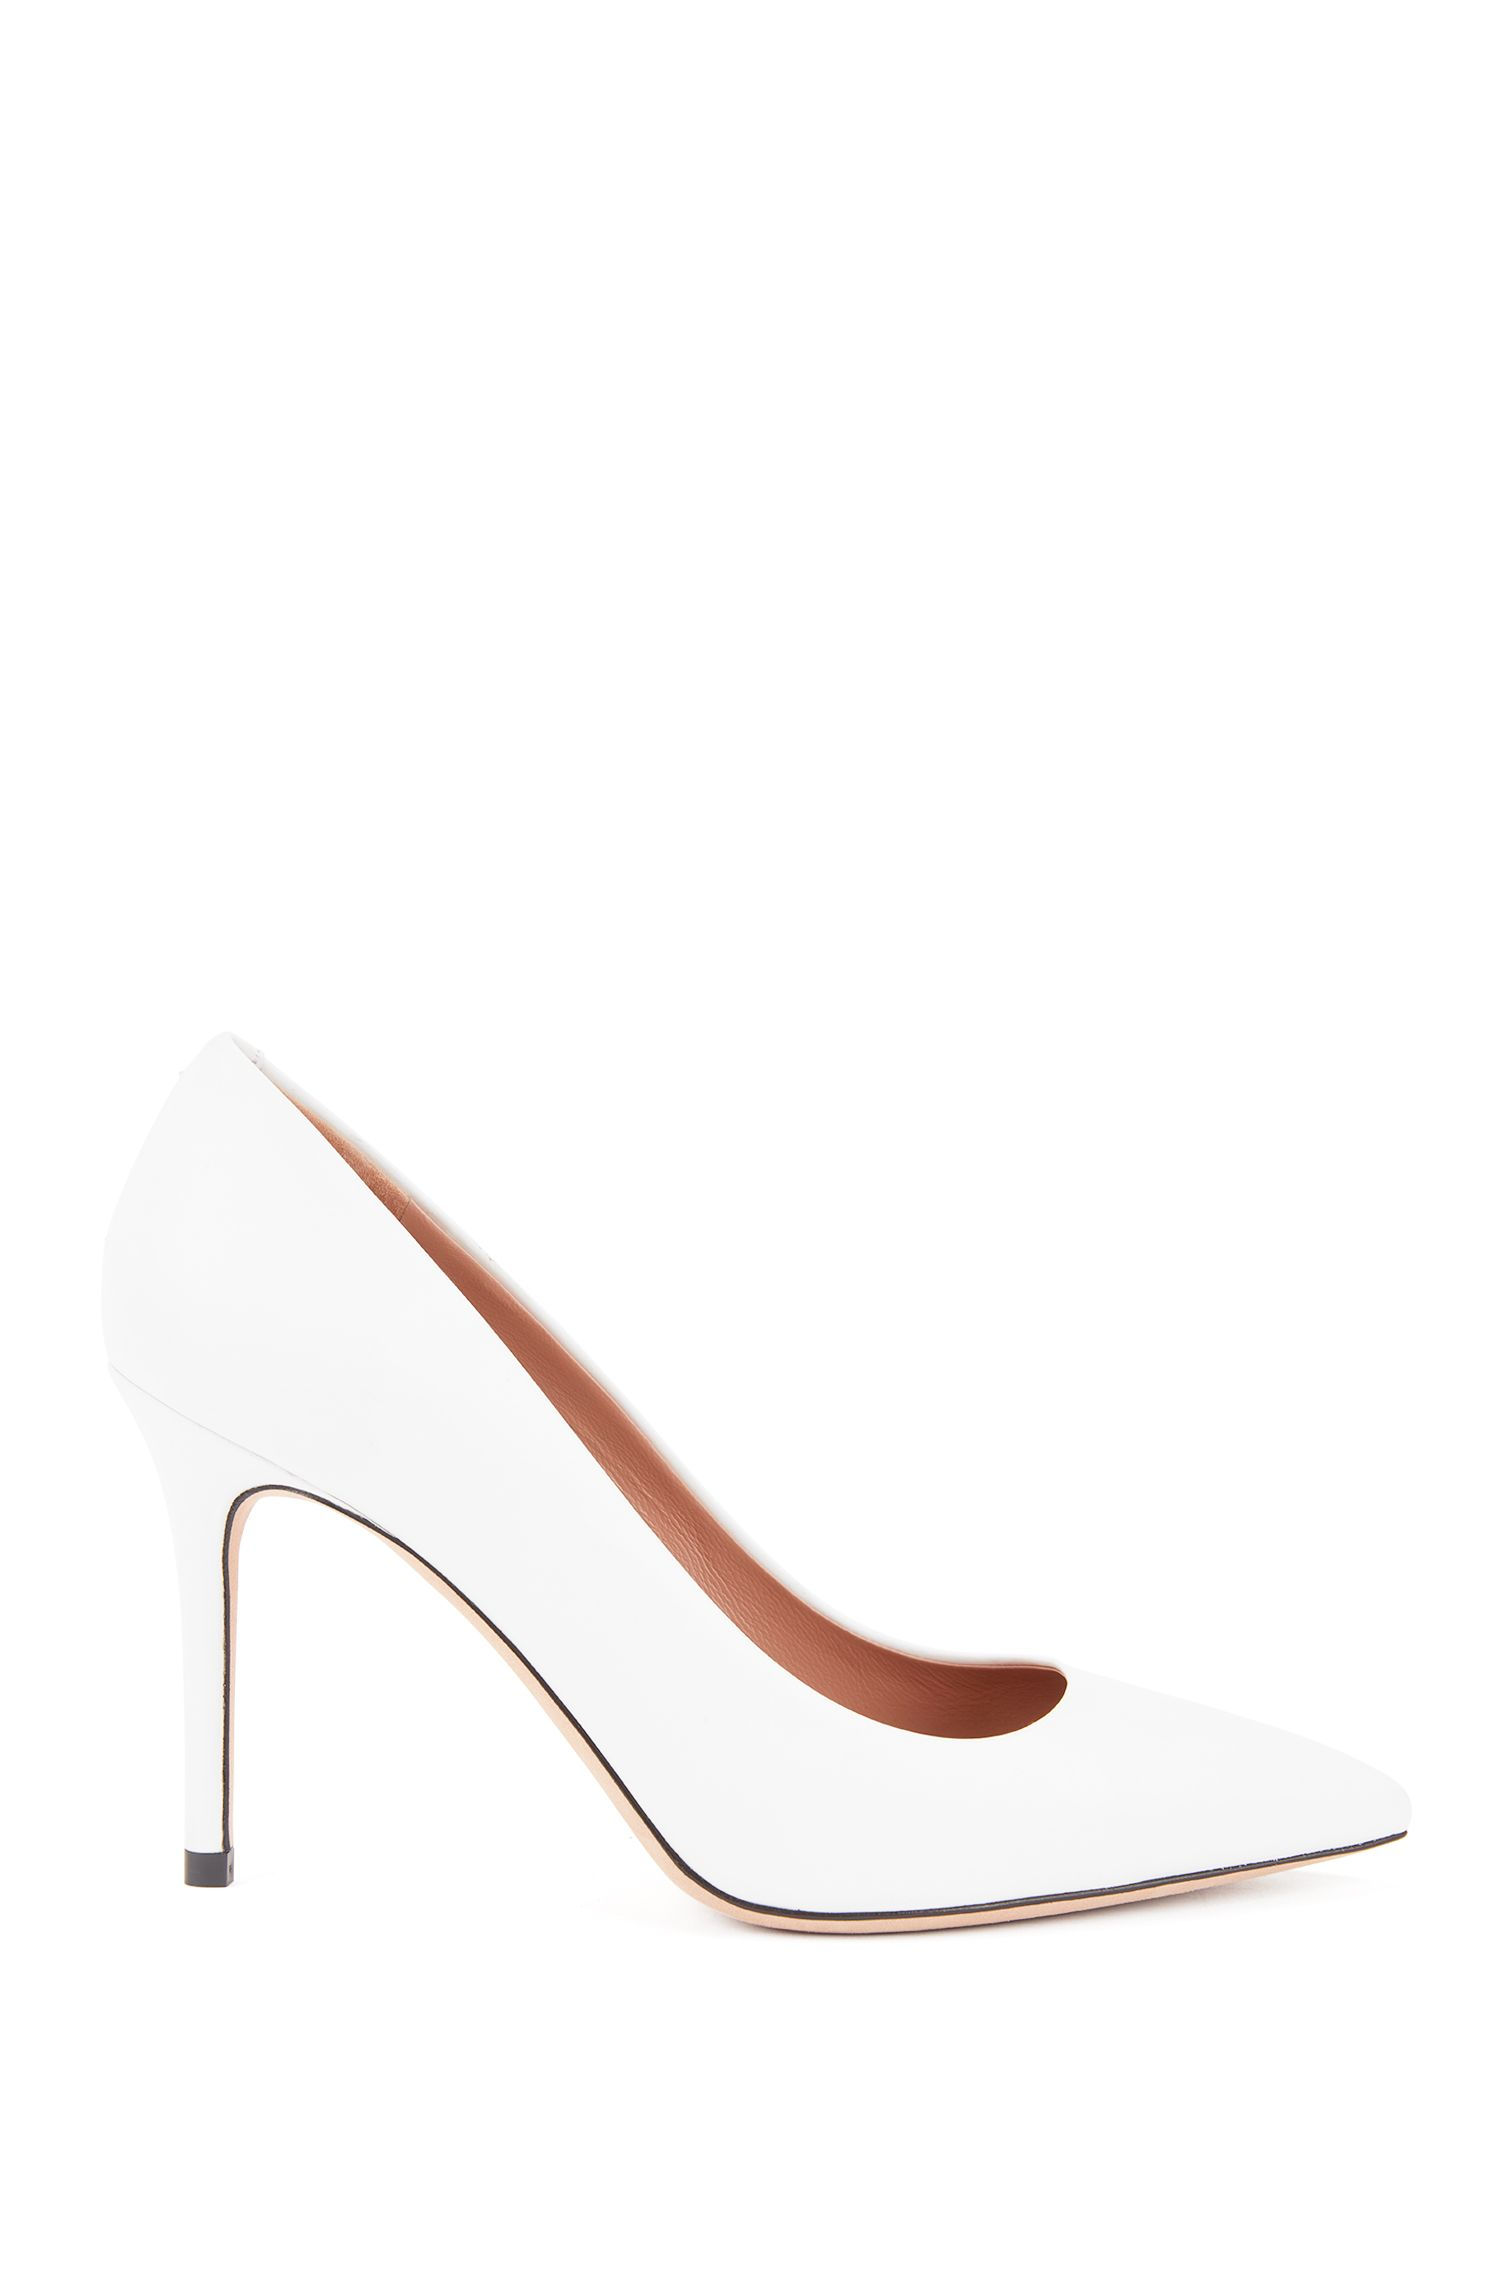 Gallery Collection court shoes in Italian calf leather